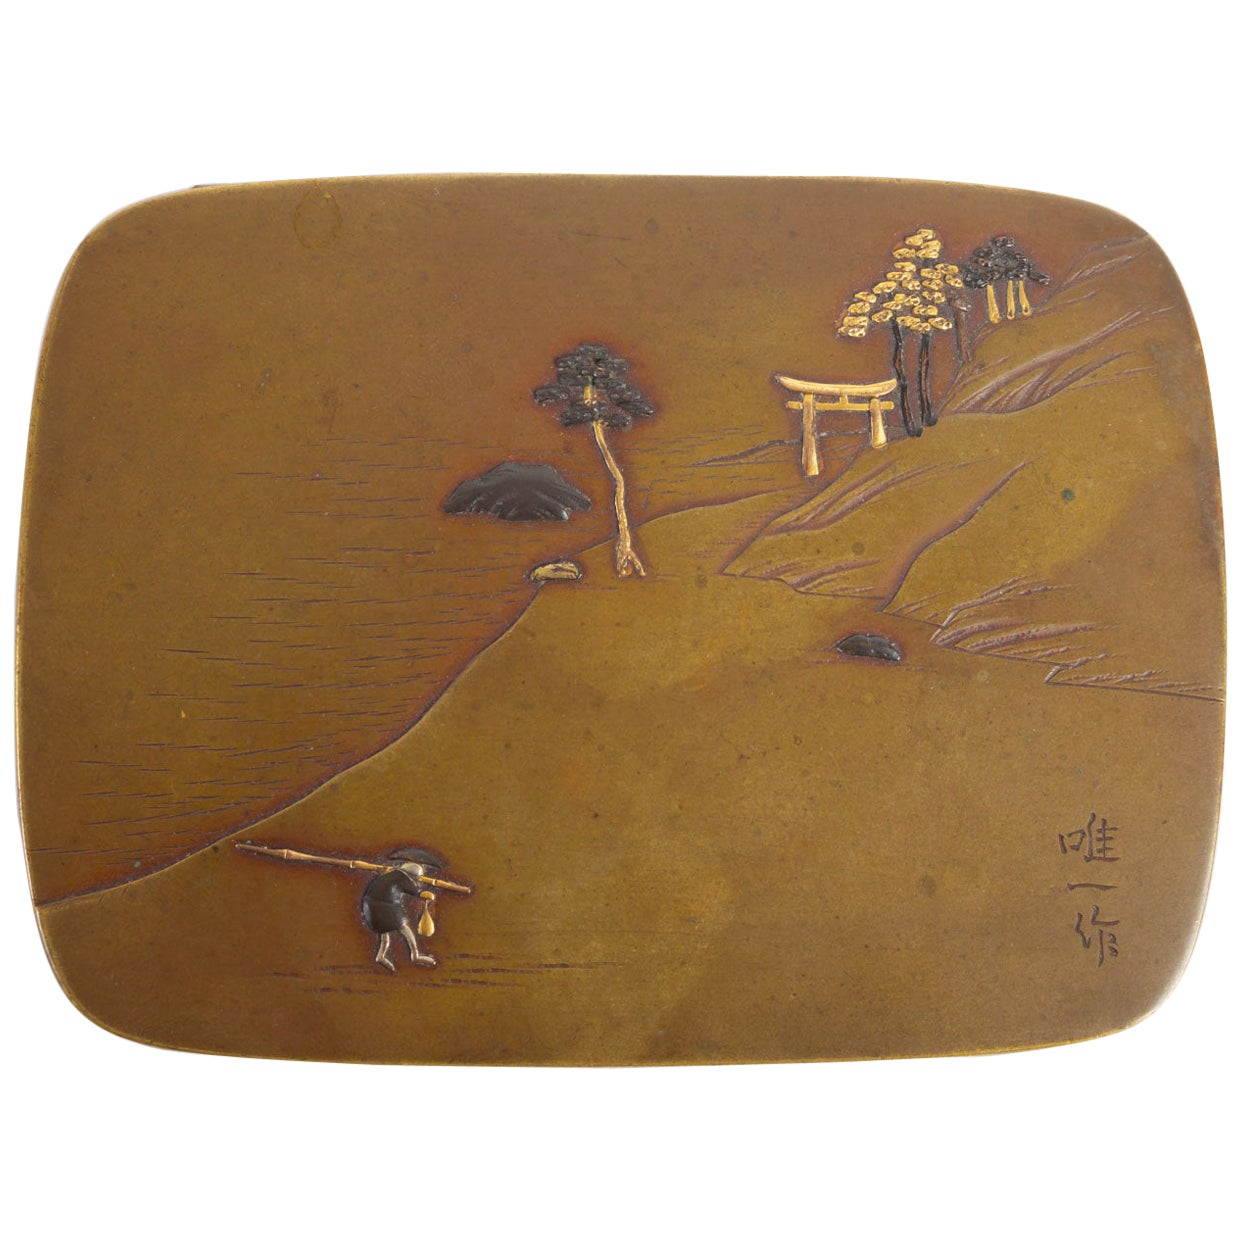 Bronze Box, Gold and Silver Enamel, Japan, 19th Century